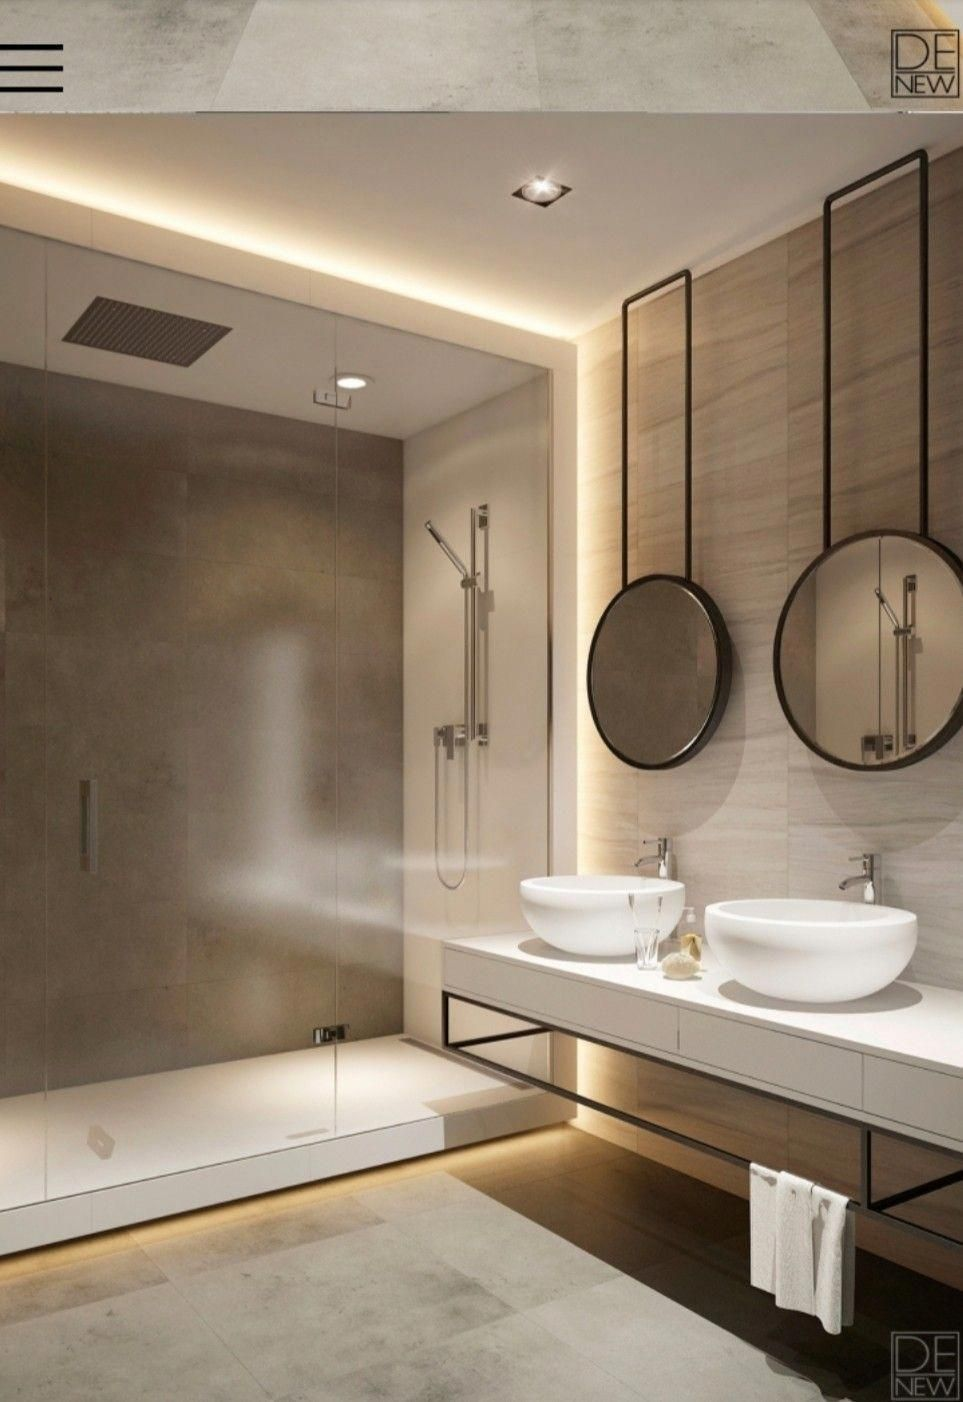 Find Out The Best Luxury Bathroom Lighting Design Selection For Your Next Interior Design Project Disco Modern Bathroom Luxury Bathroom Modern Bathroom Design